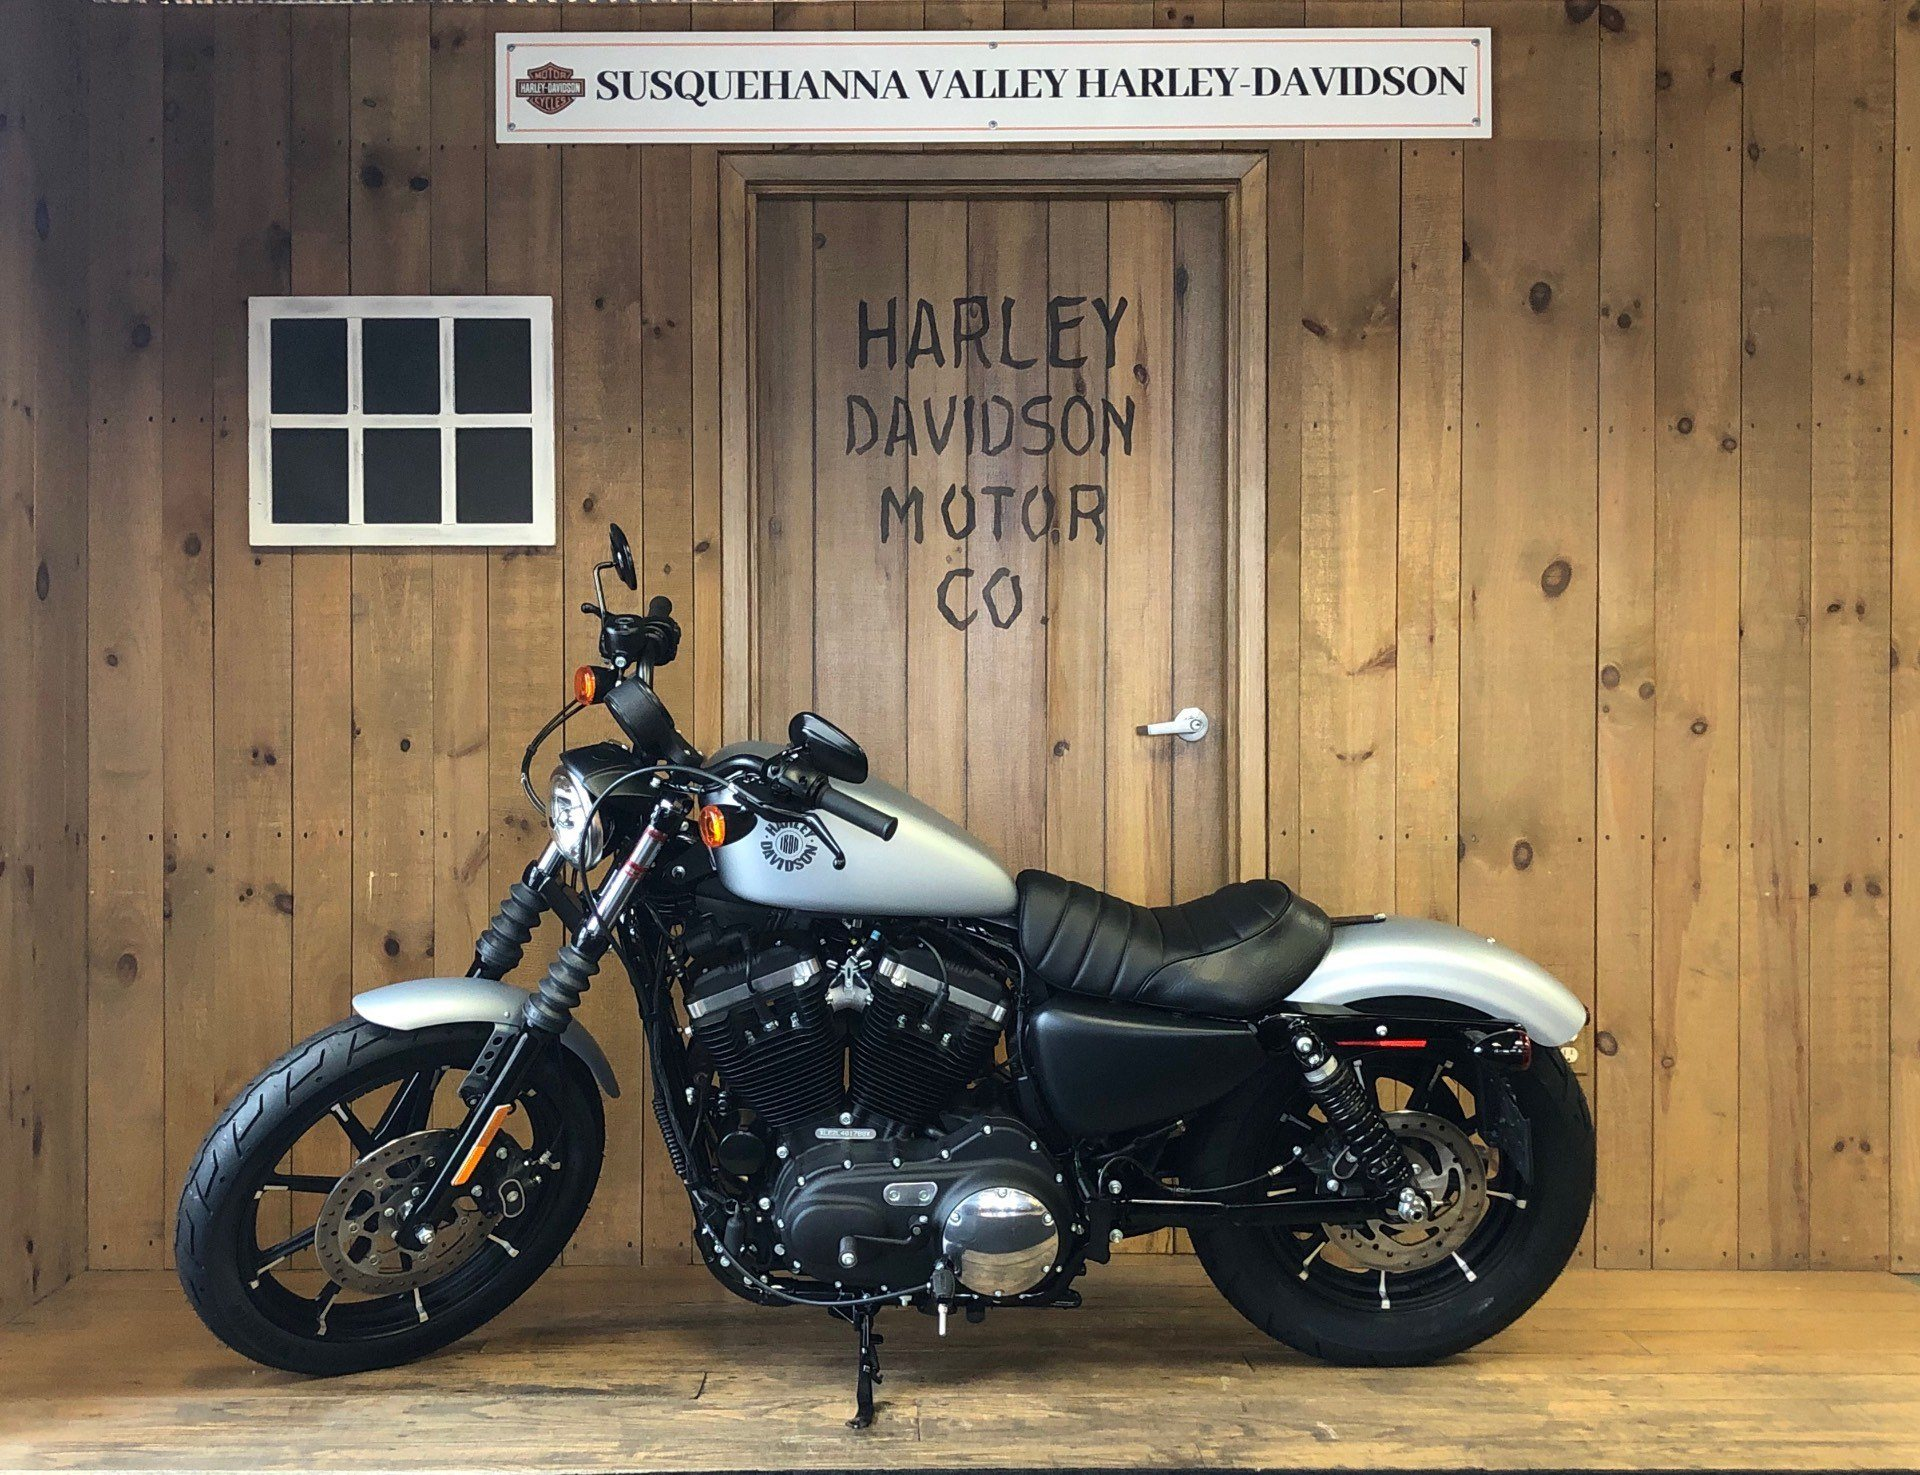 2020 Harley-Davidson XL883N in Harrisburg, Pennsylvania - Photo 2